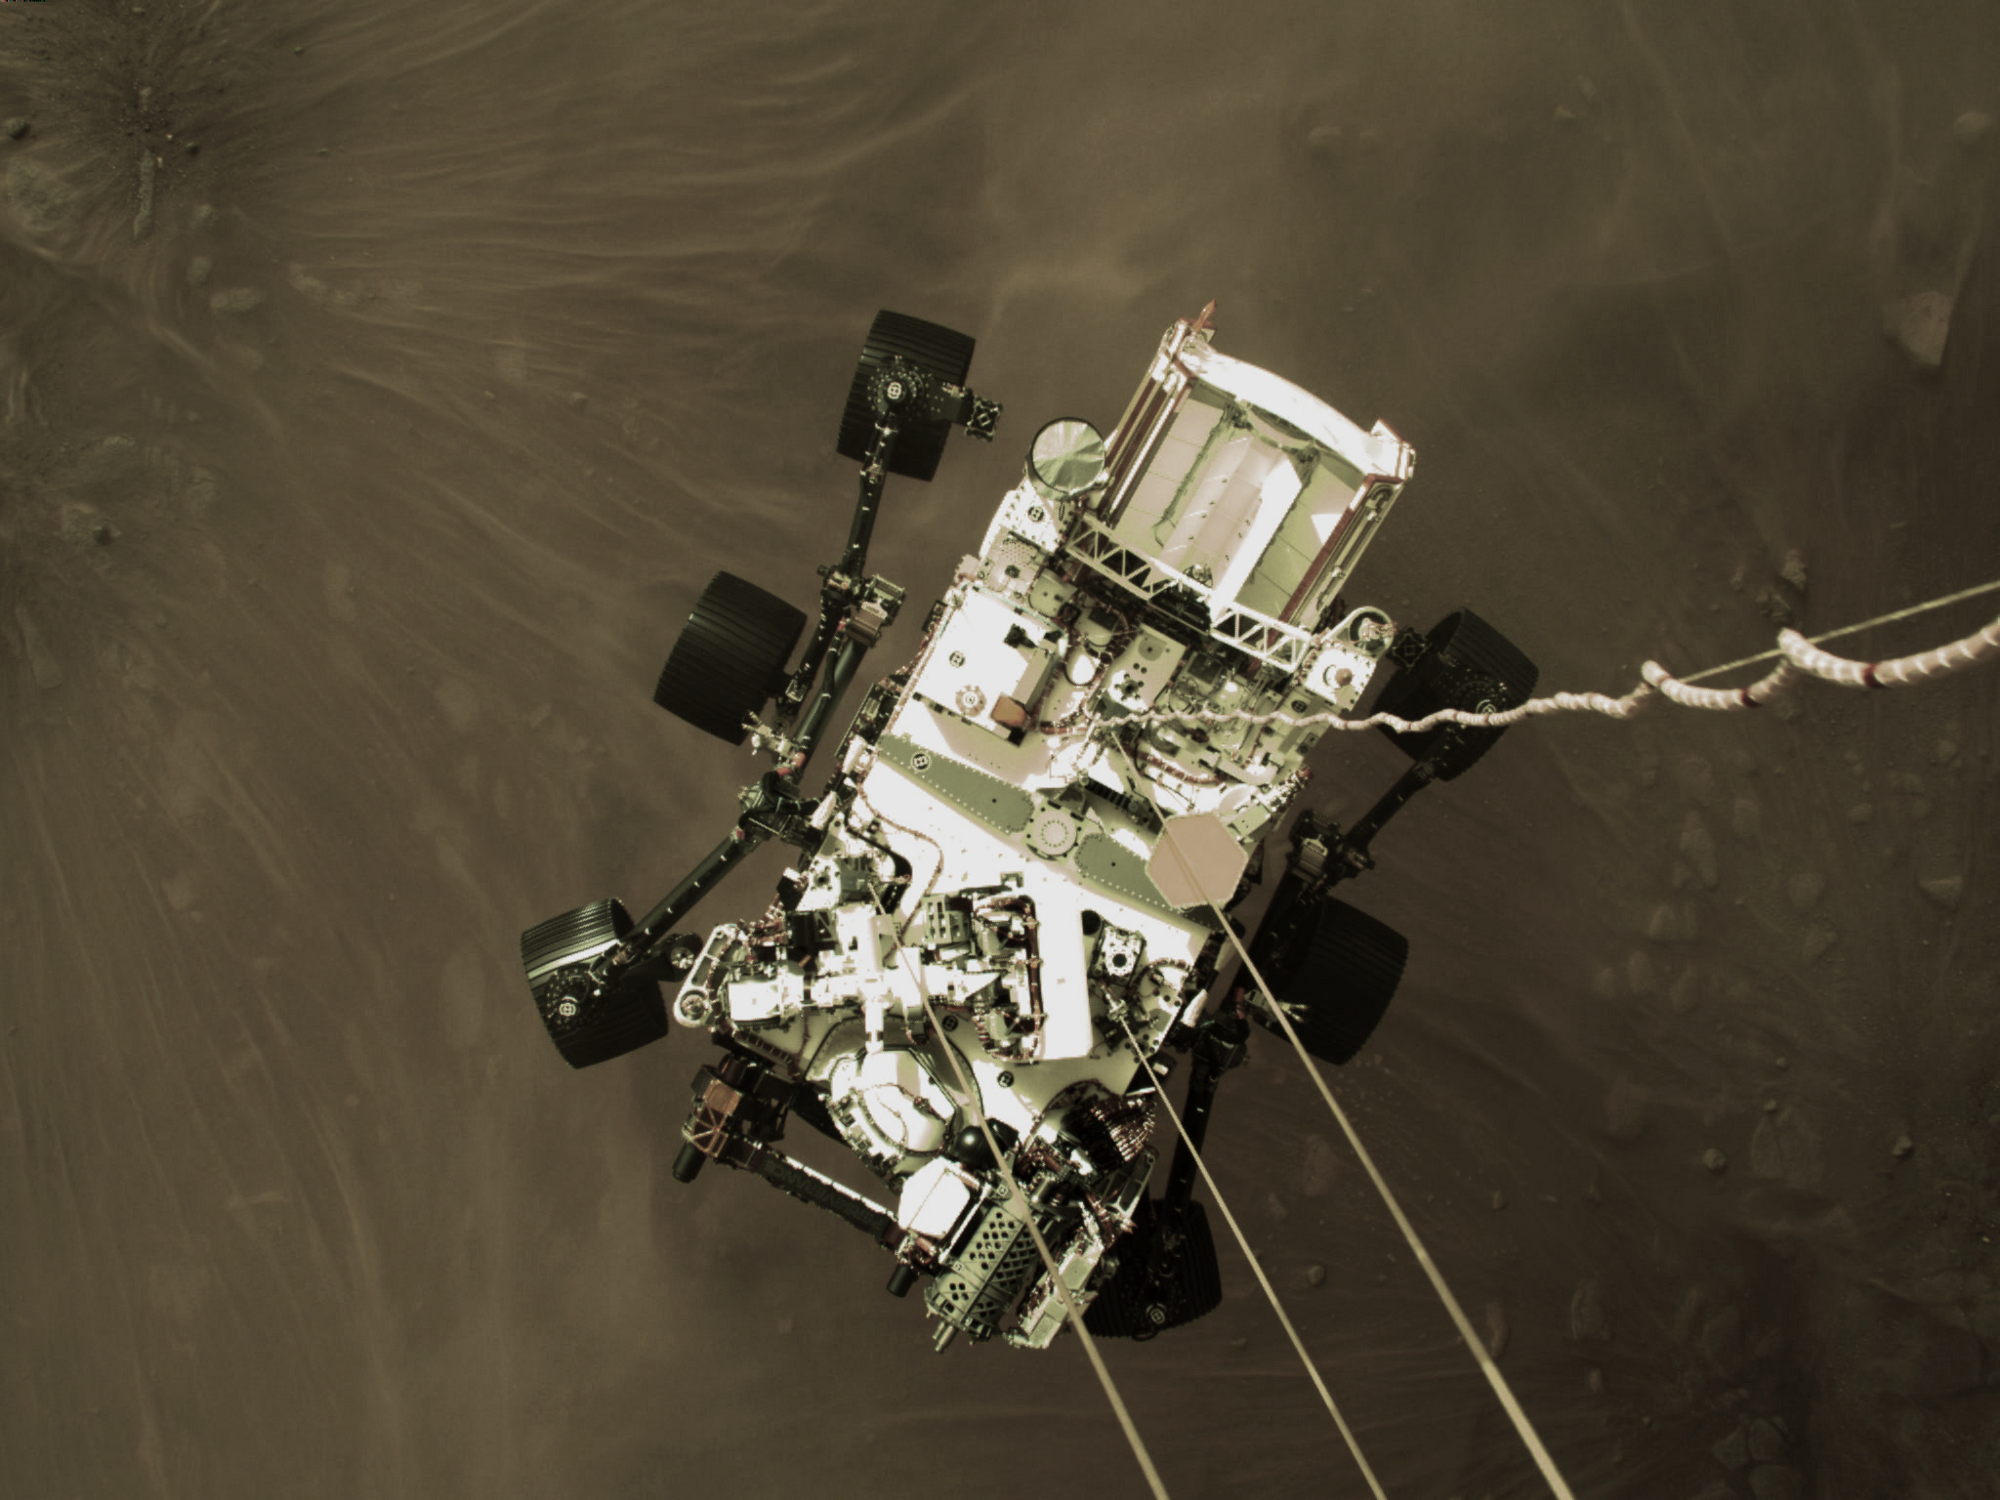 A photo taken by Perseverance's landing jetpack as it lowers the rover onto the Martian surface.